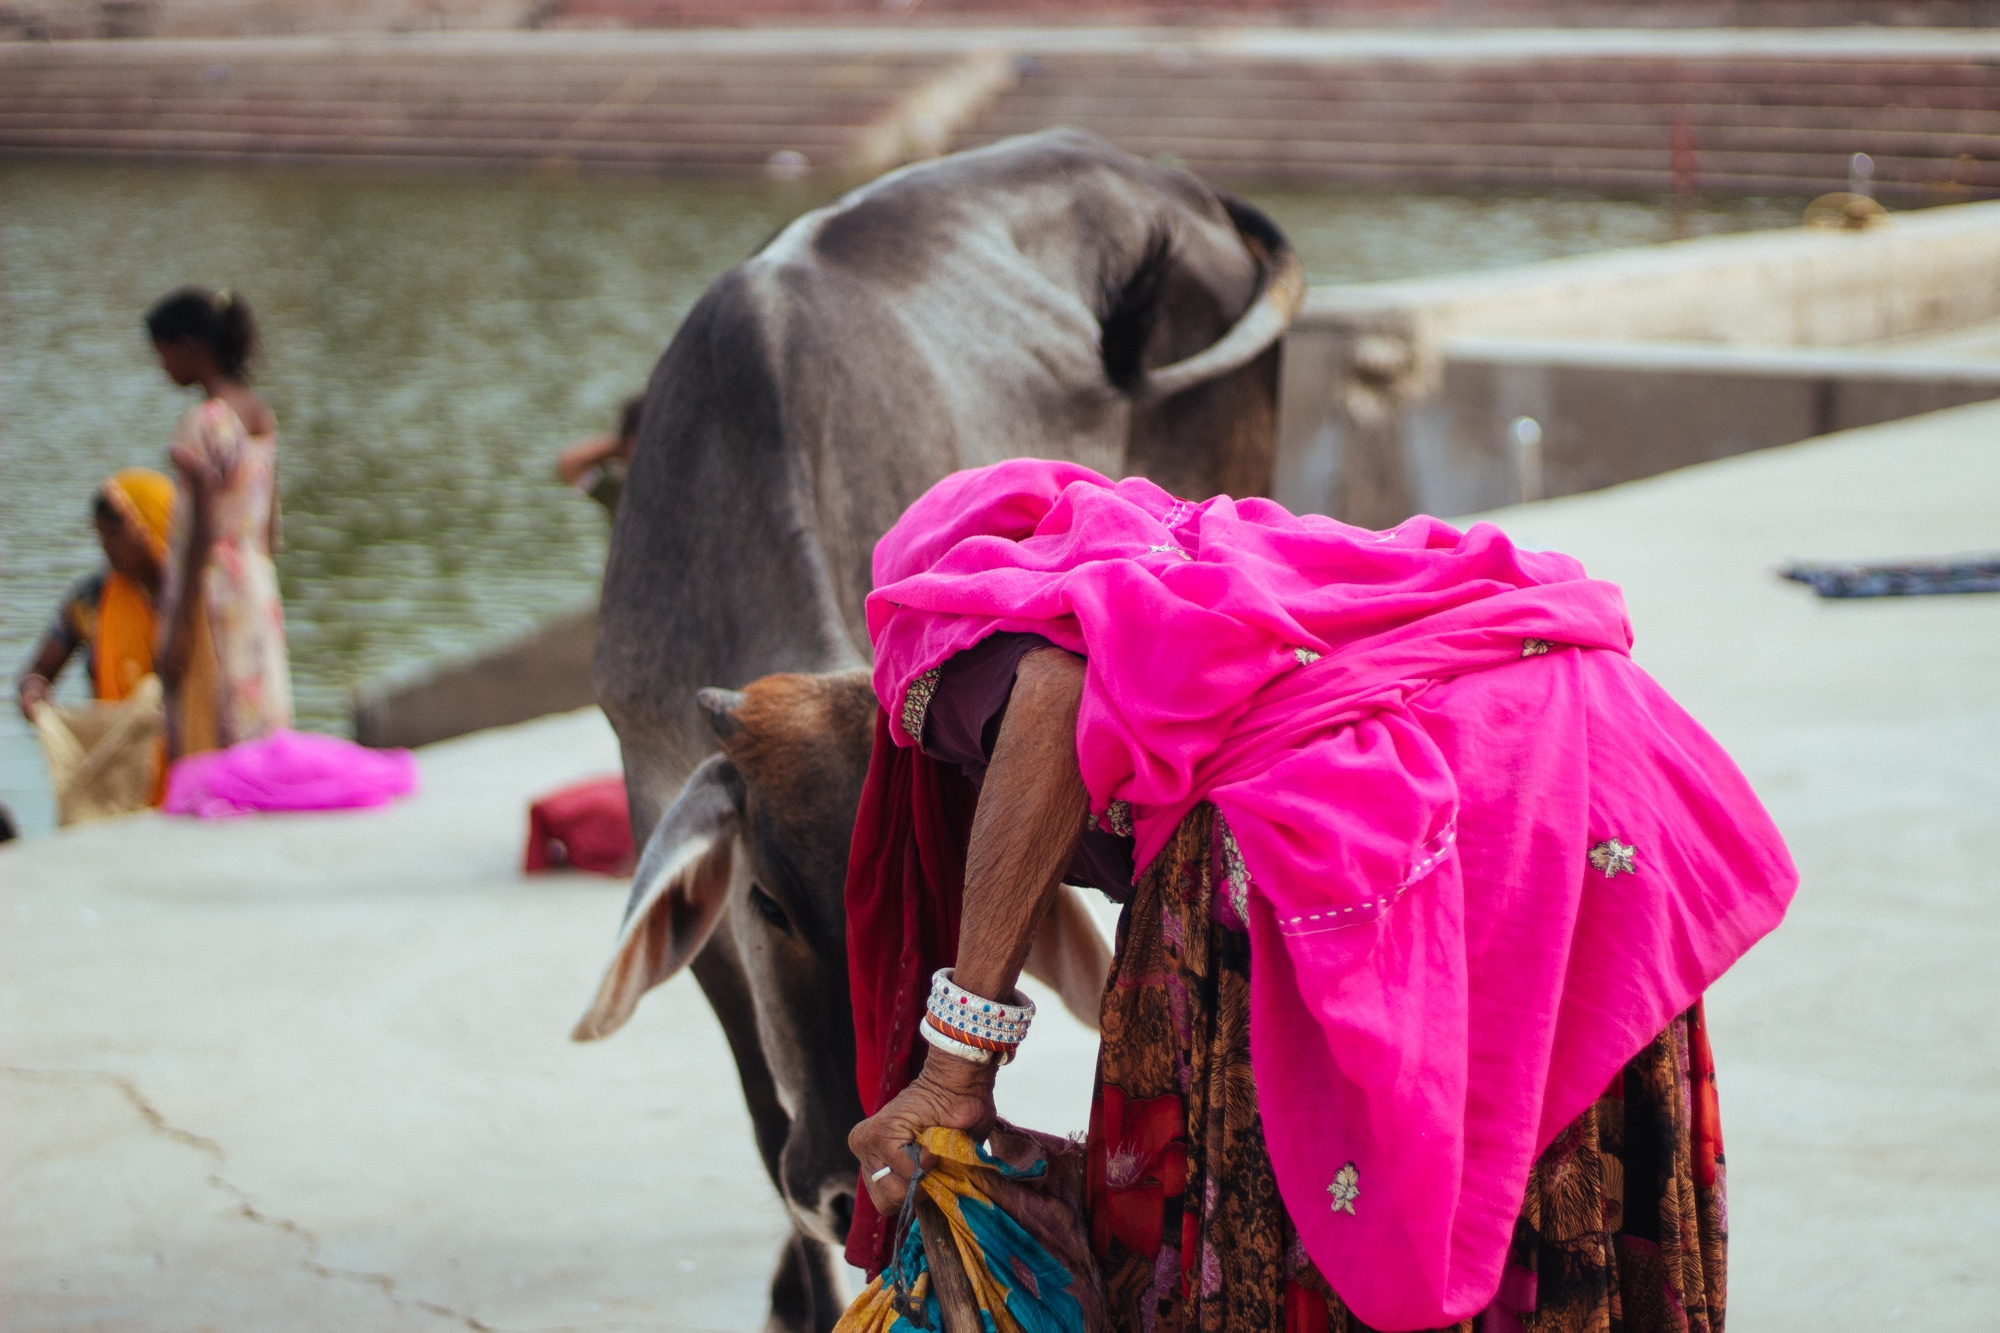 An elderly woman with camptocormia at Pushkar ghat